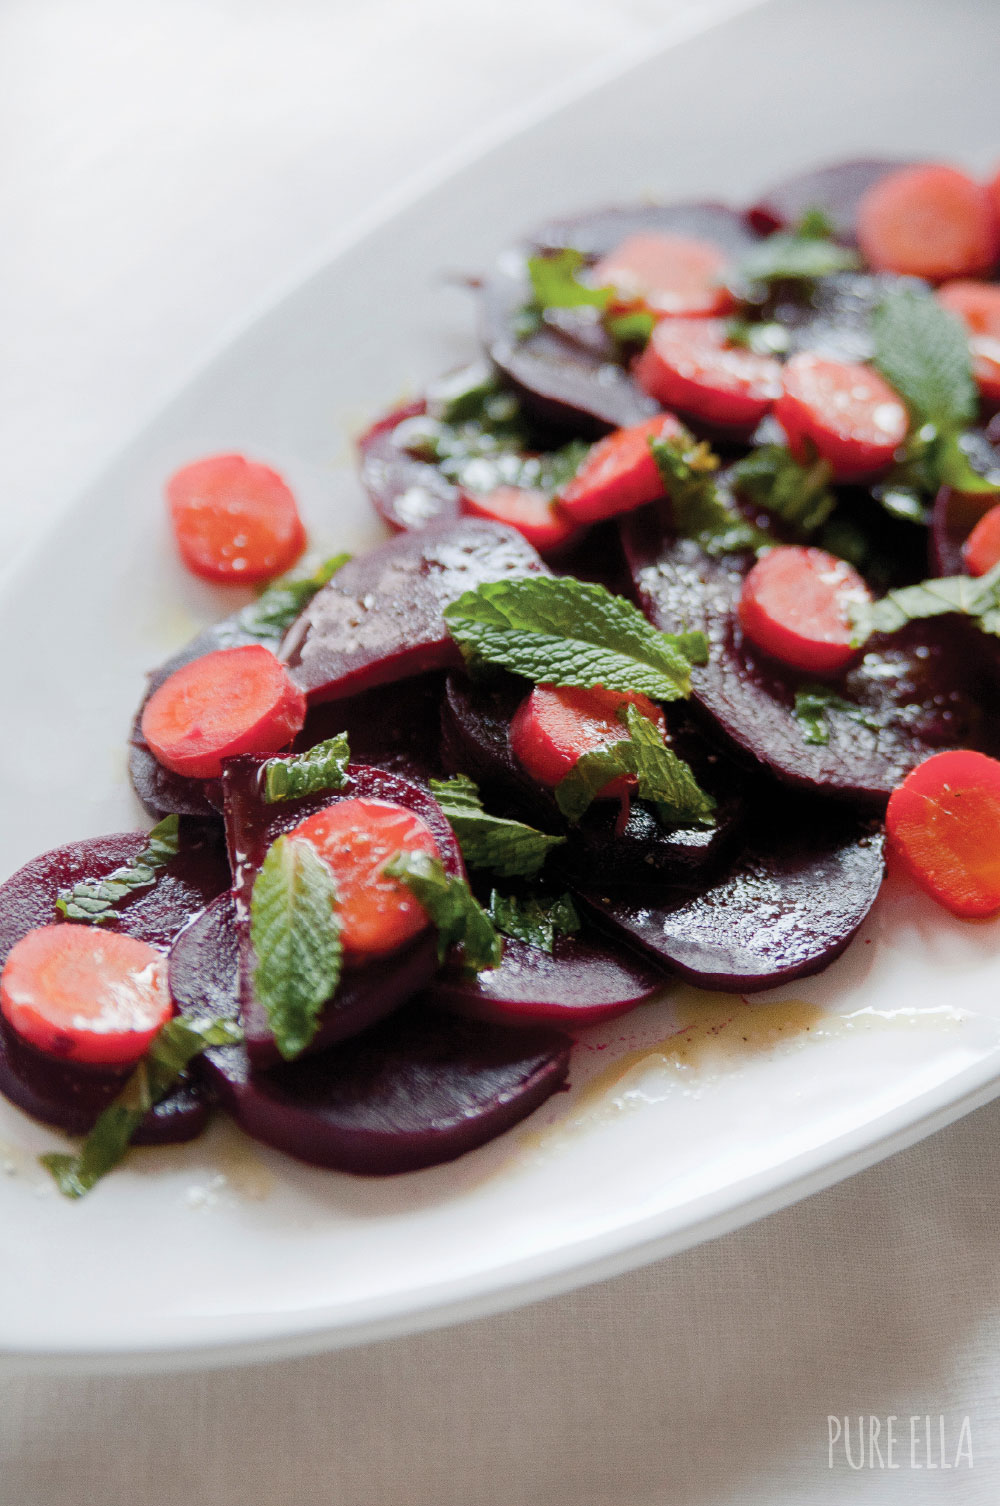 Pure-Ella-Minted-Beets-and-Carrots-Side-Dish2